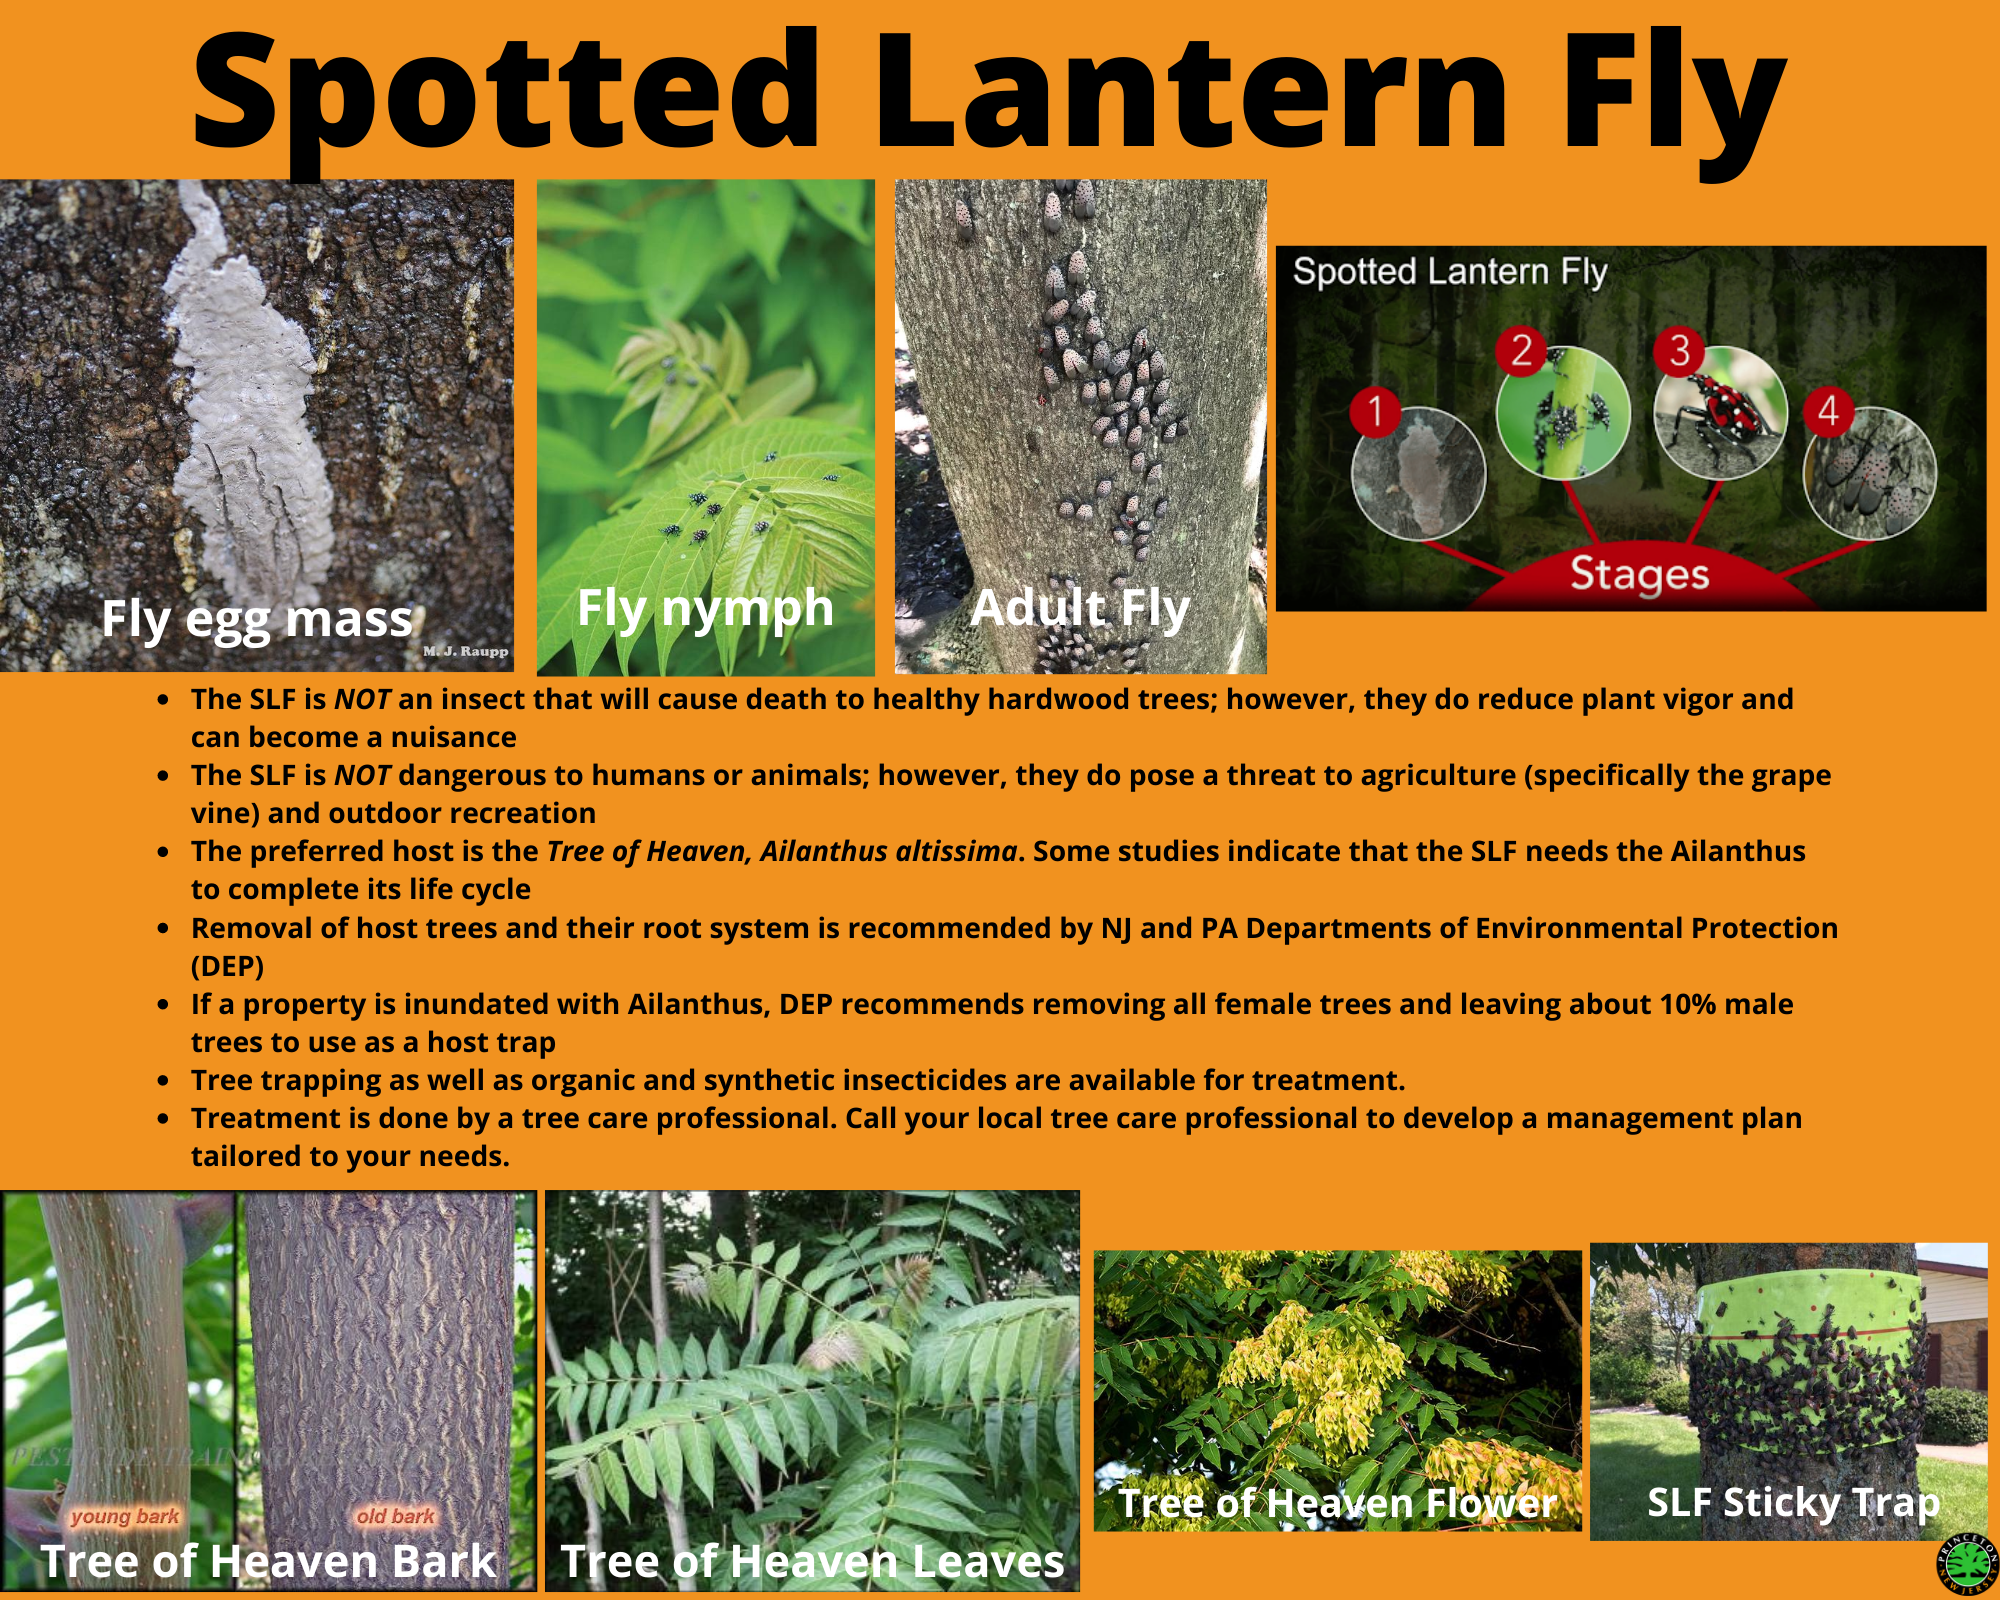 Spotted lantern fly description and tips